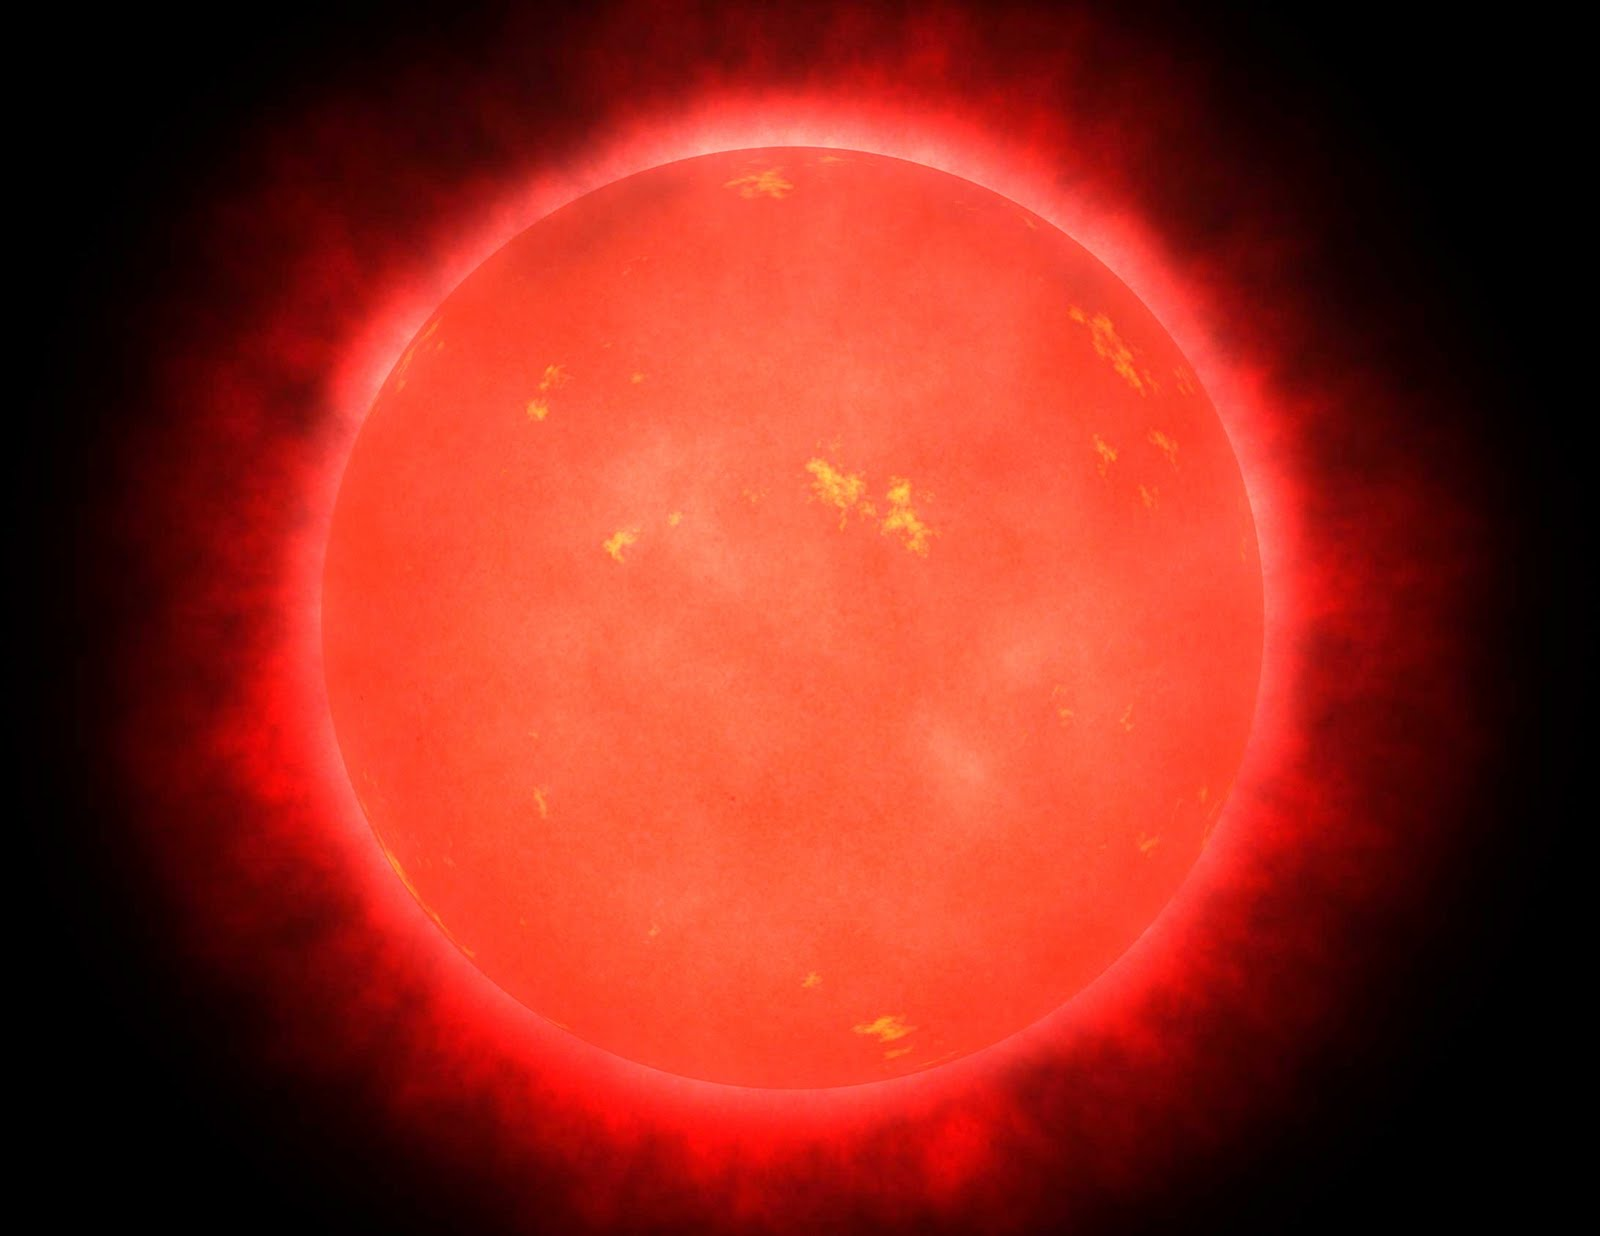 Red Dwarf Sun (page 2) - Pics about space